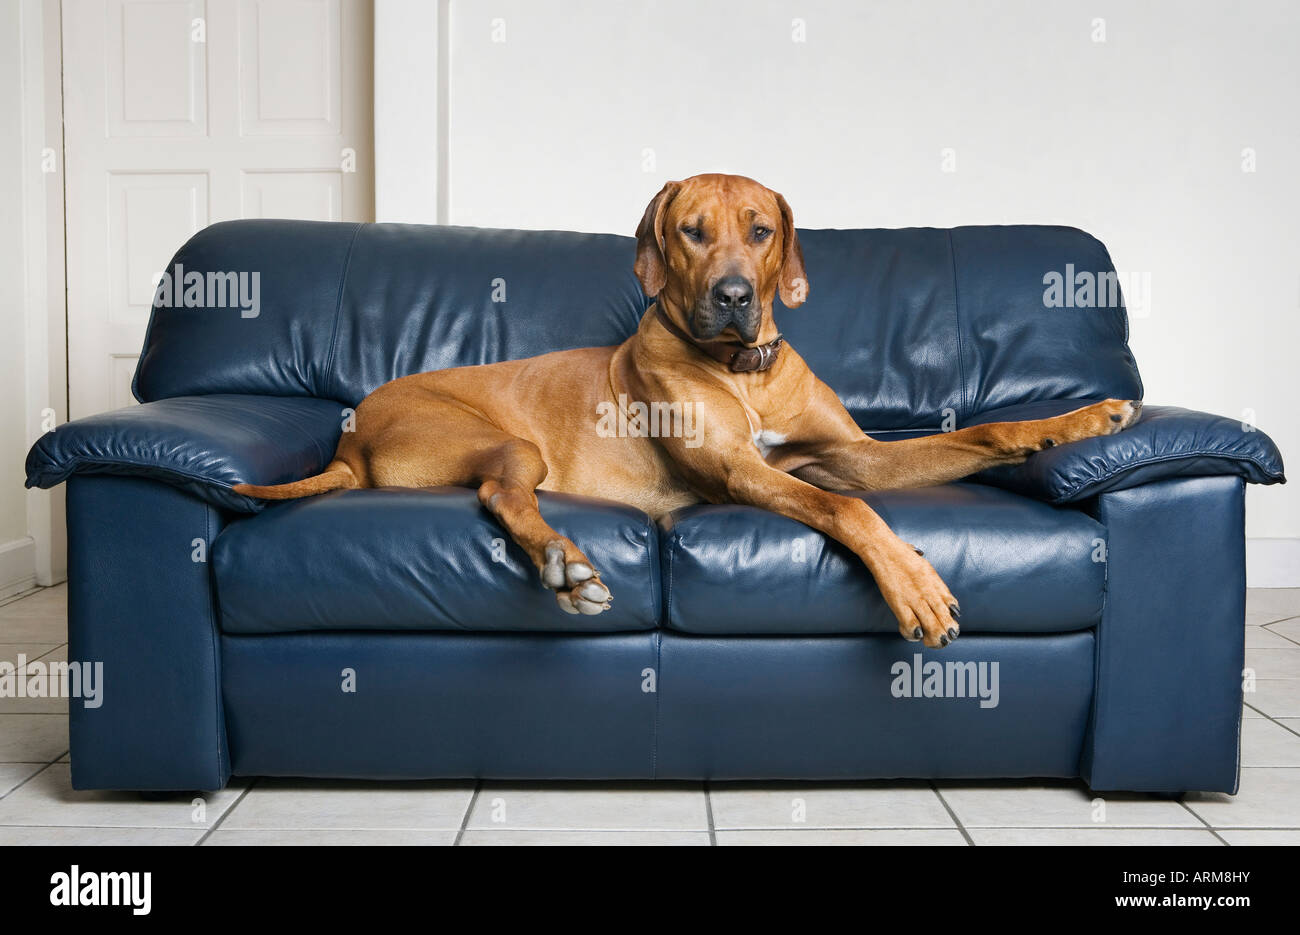 Rhodesian ridge retour dog lying on sofa Photo Stock